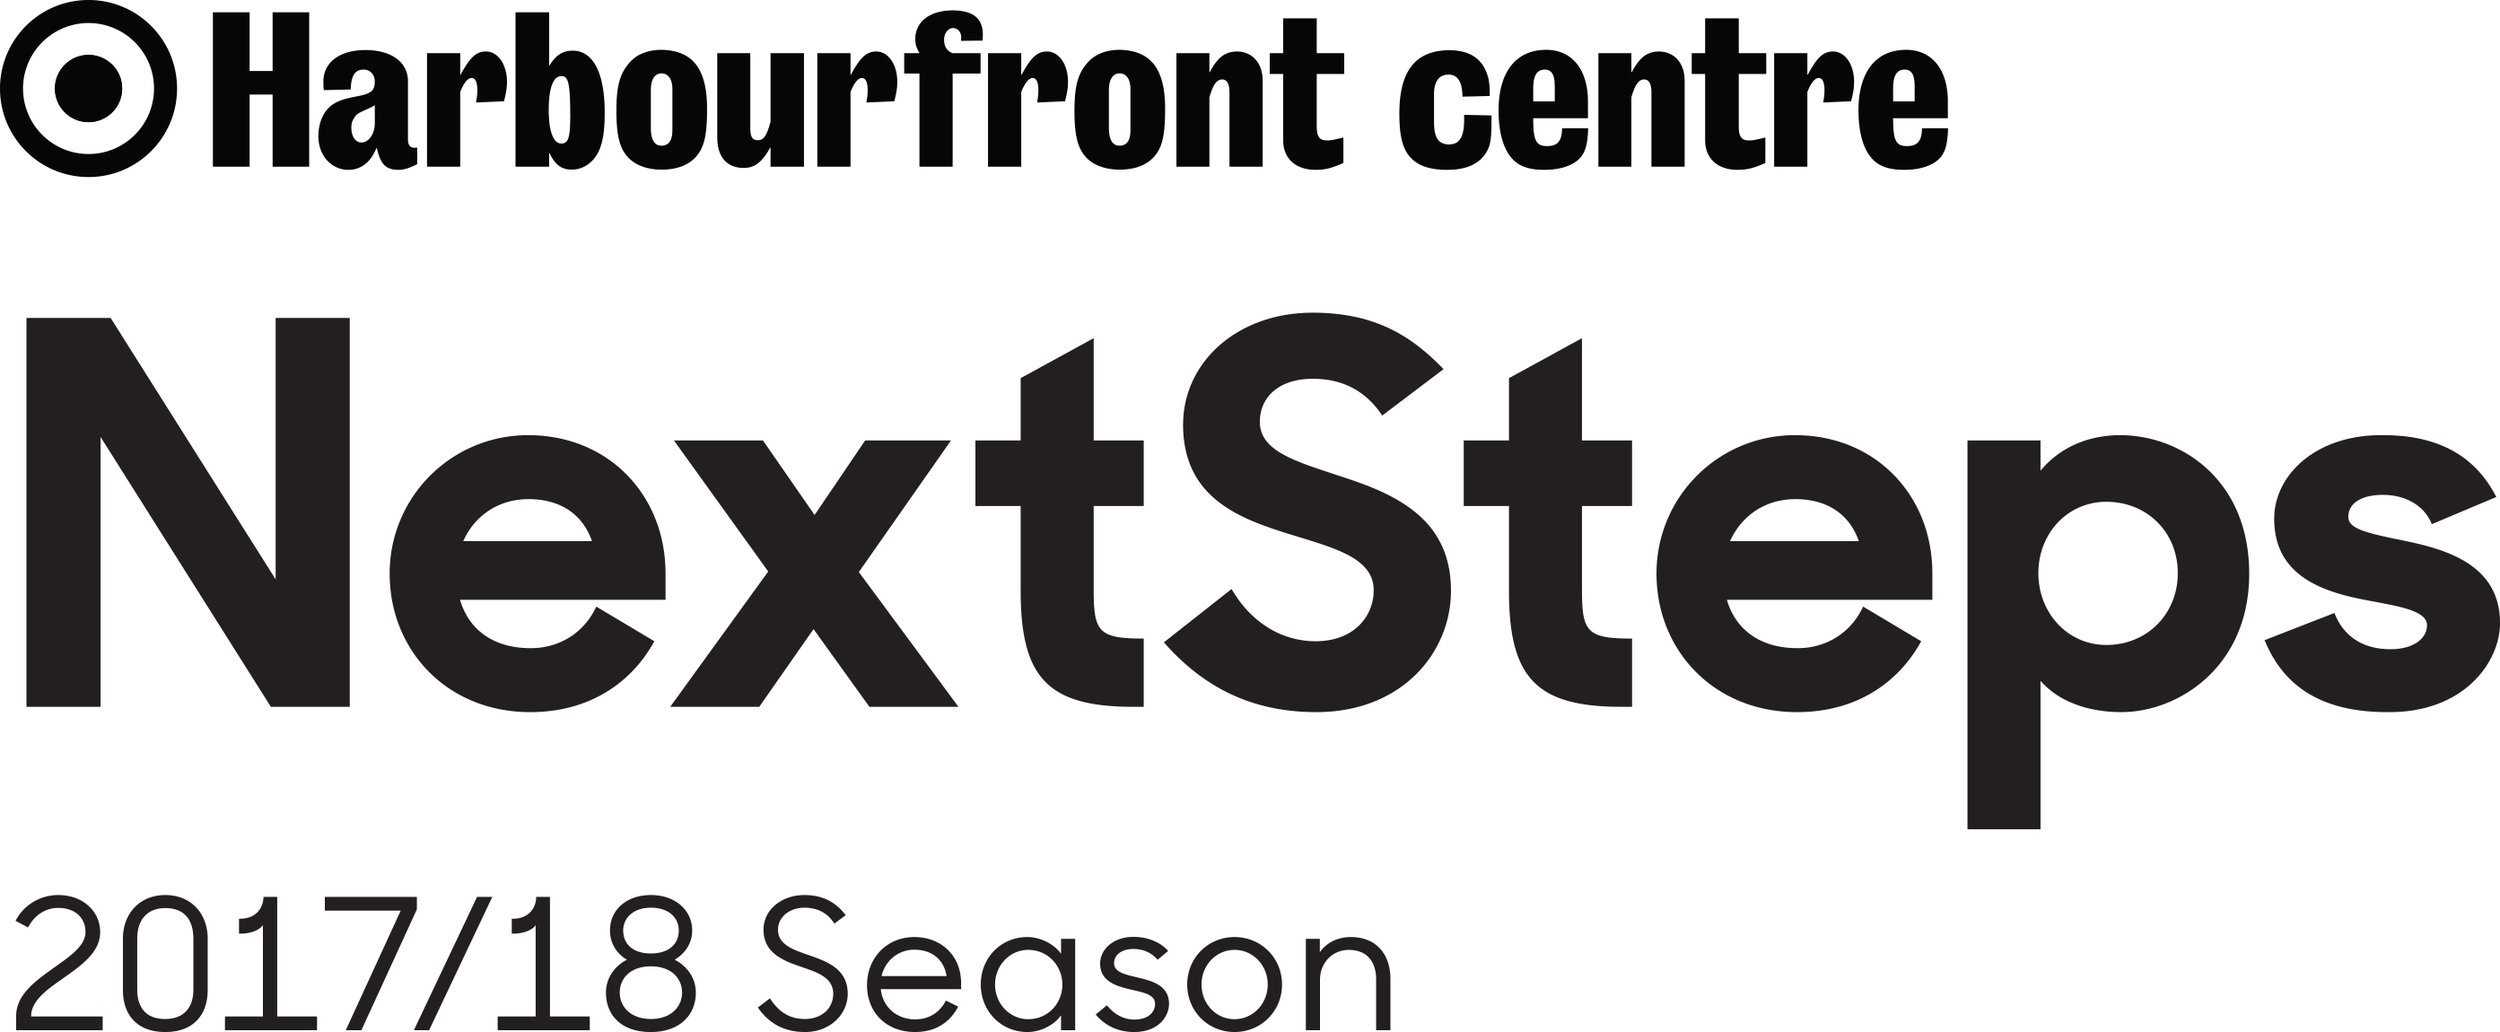 Harbourfront Centre NextSteps Logo black on white.jpg